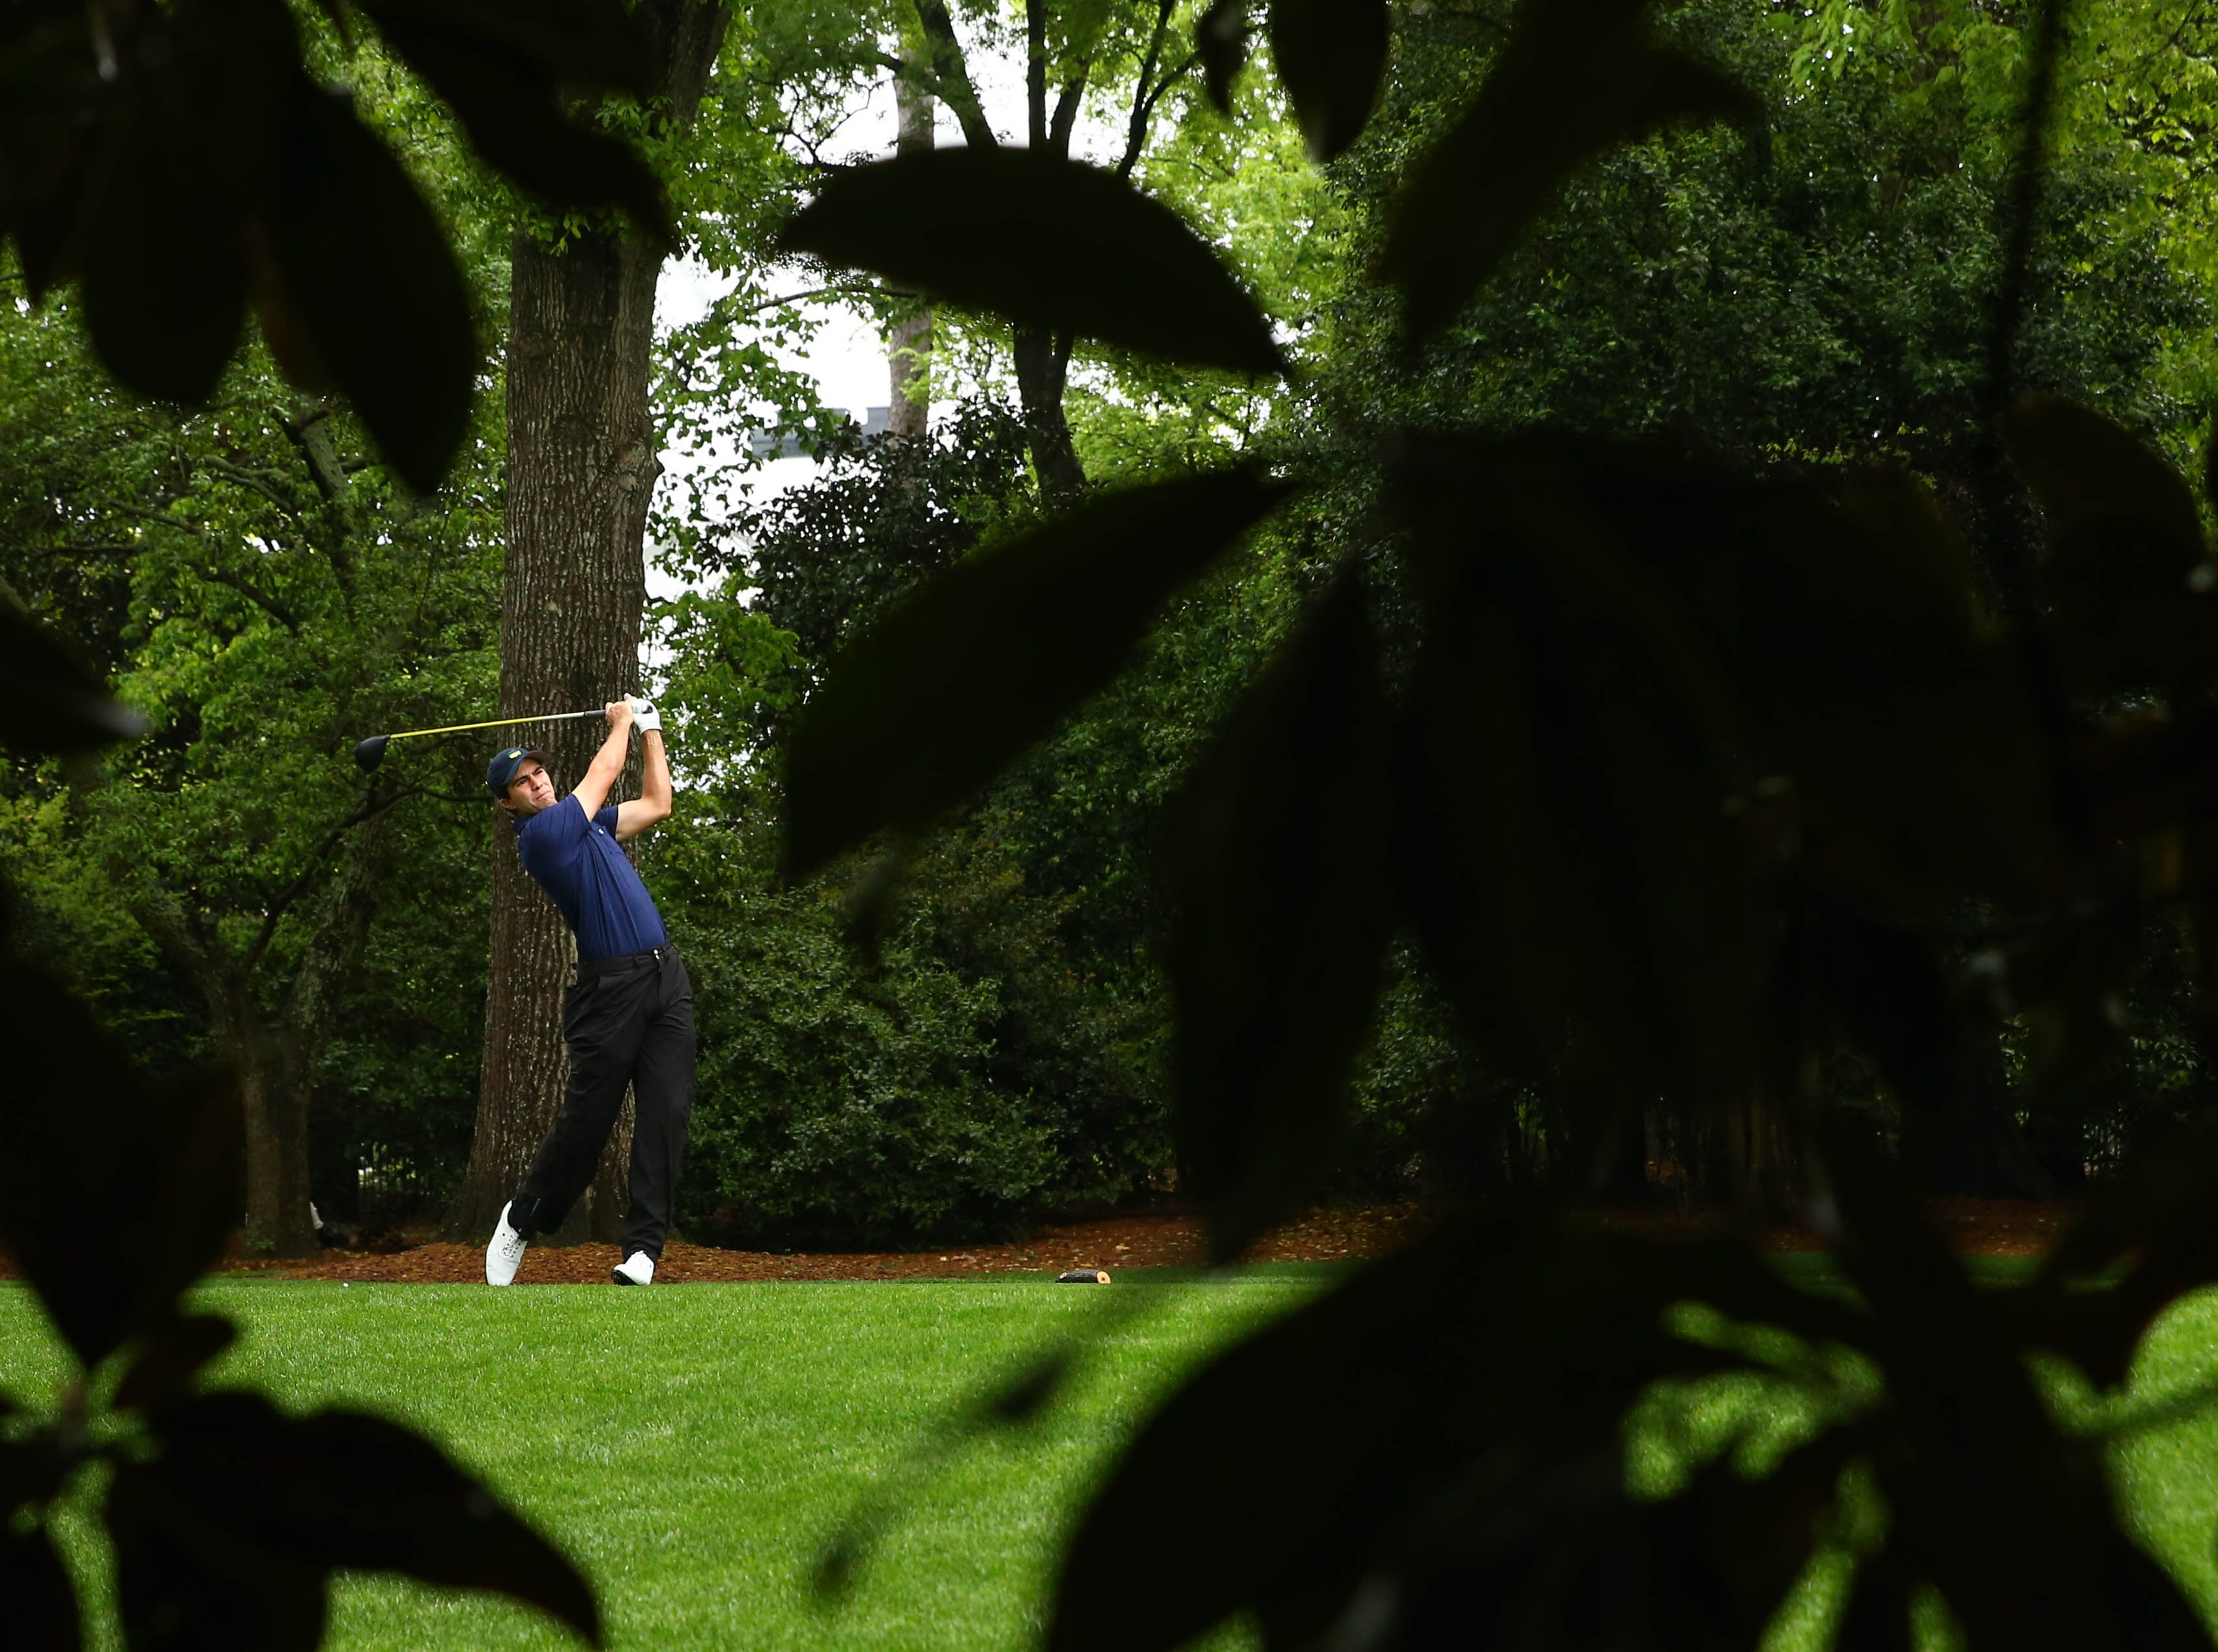 Apr 12, 2019; Augusta, GA, USA; Matt Wallace hits his tee shot on the 2nd hole during the second round of The Masters golf tournament at Augusta National Golf Club. Mandatory Credit: Rob Schumacher-USA TODAY Sports